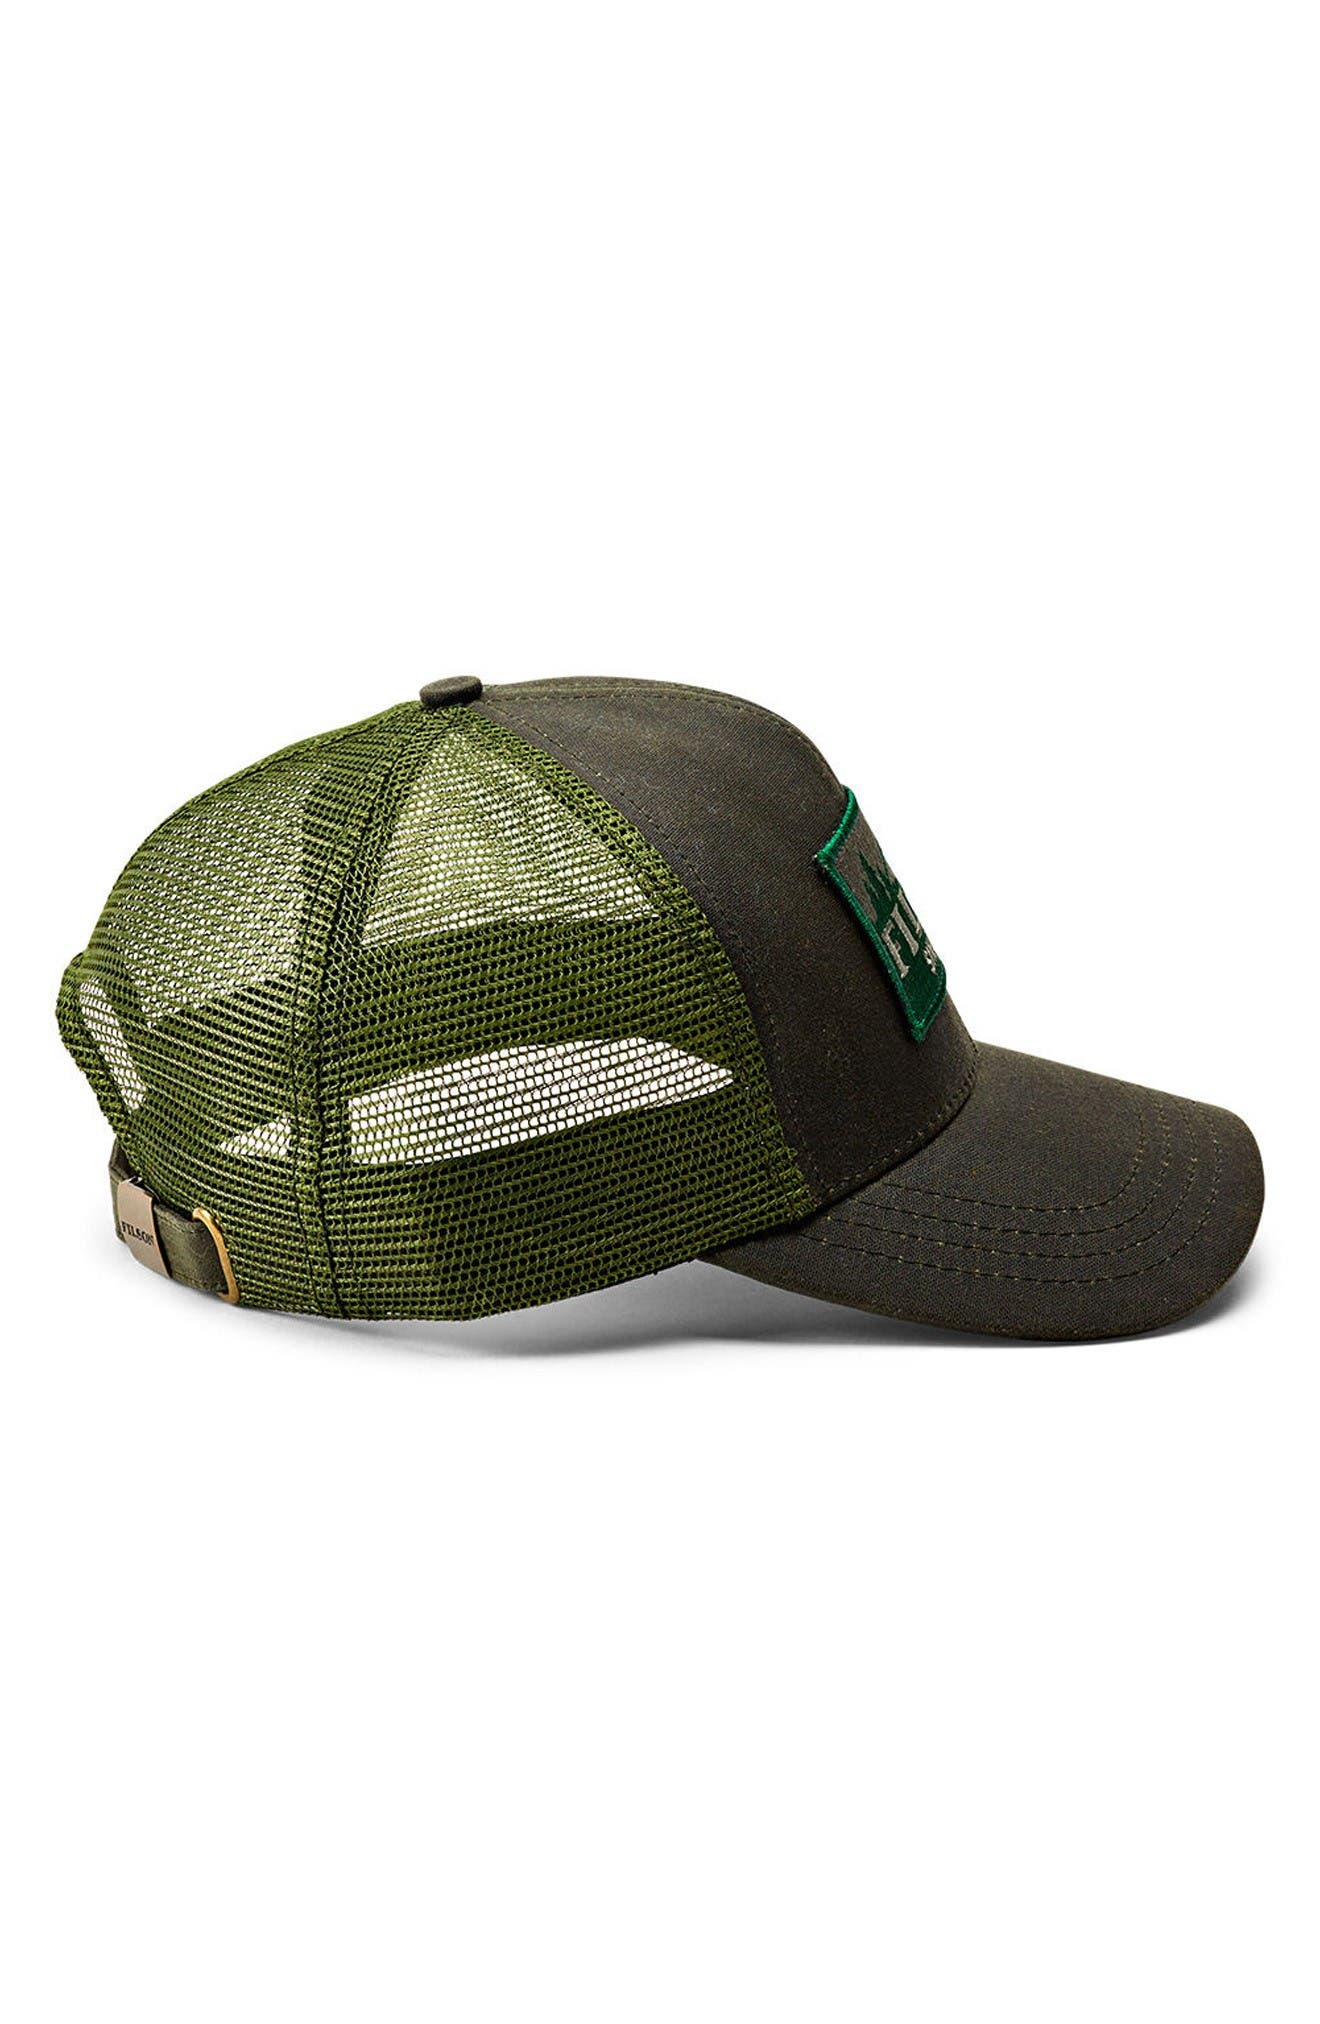 Logger Trucker Hat,                             Alternate thumbnail 2, color,                             Otter Green